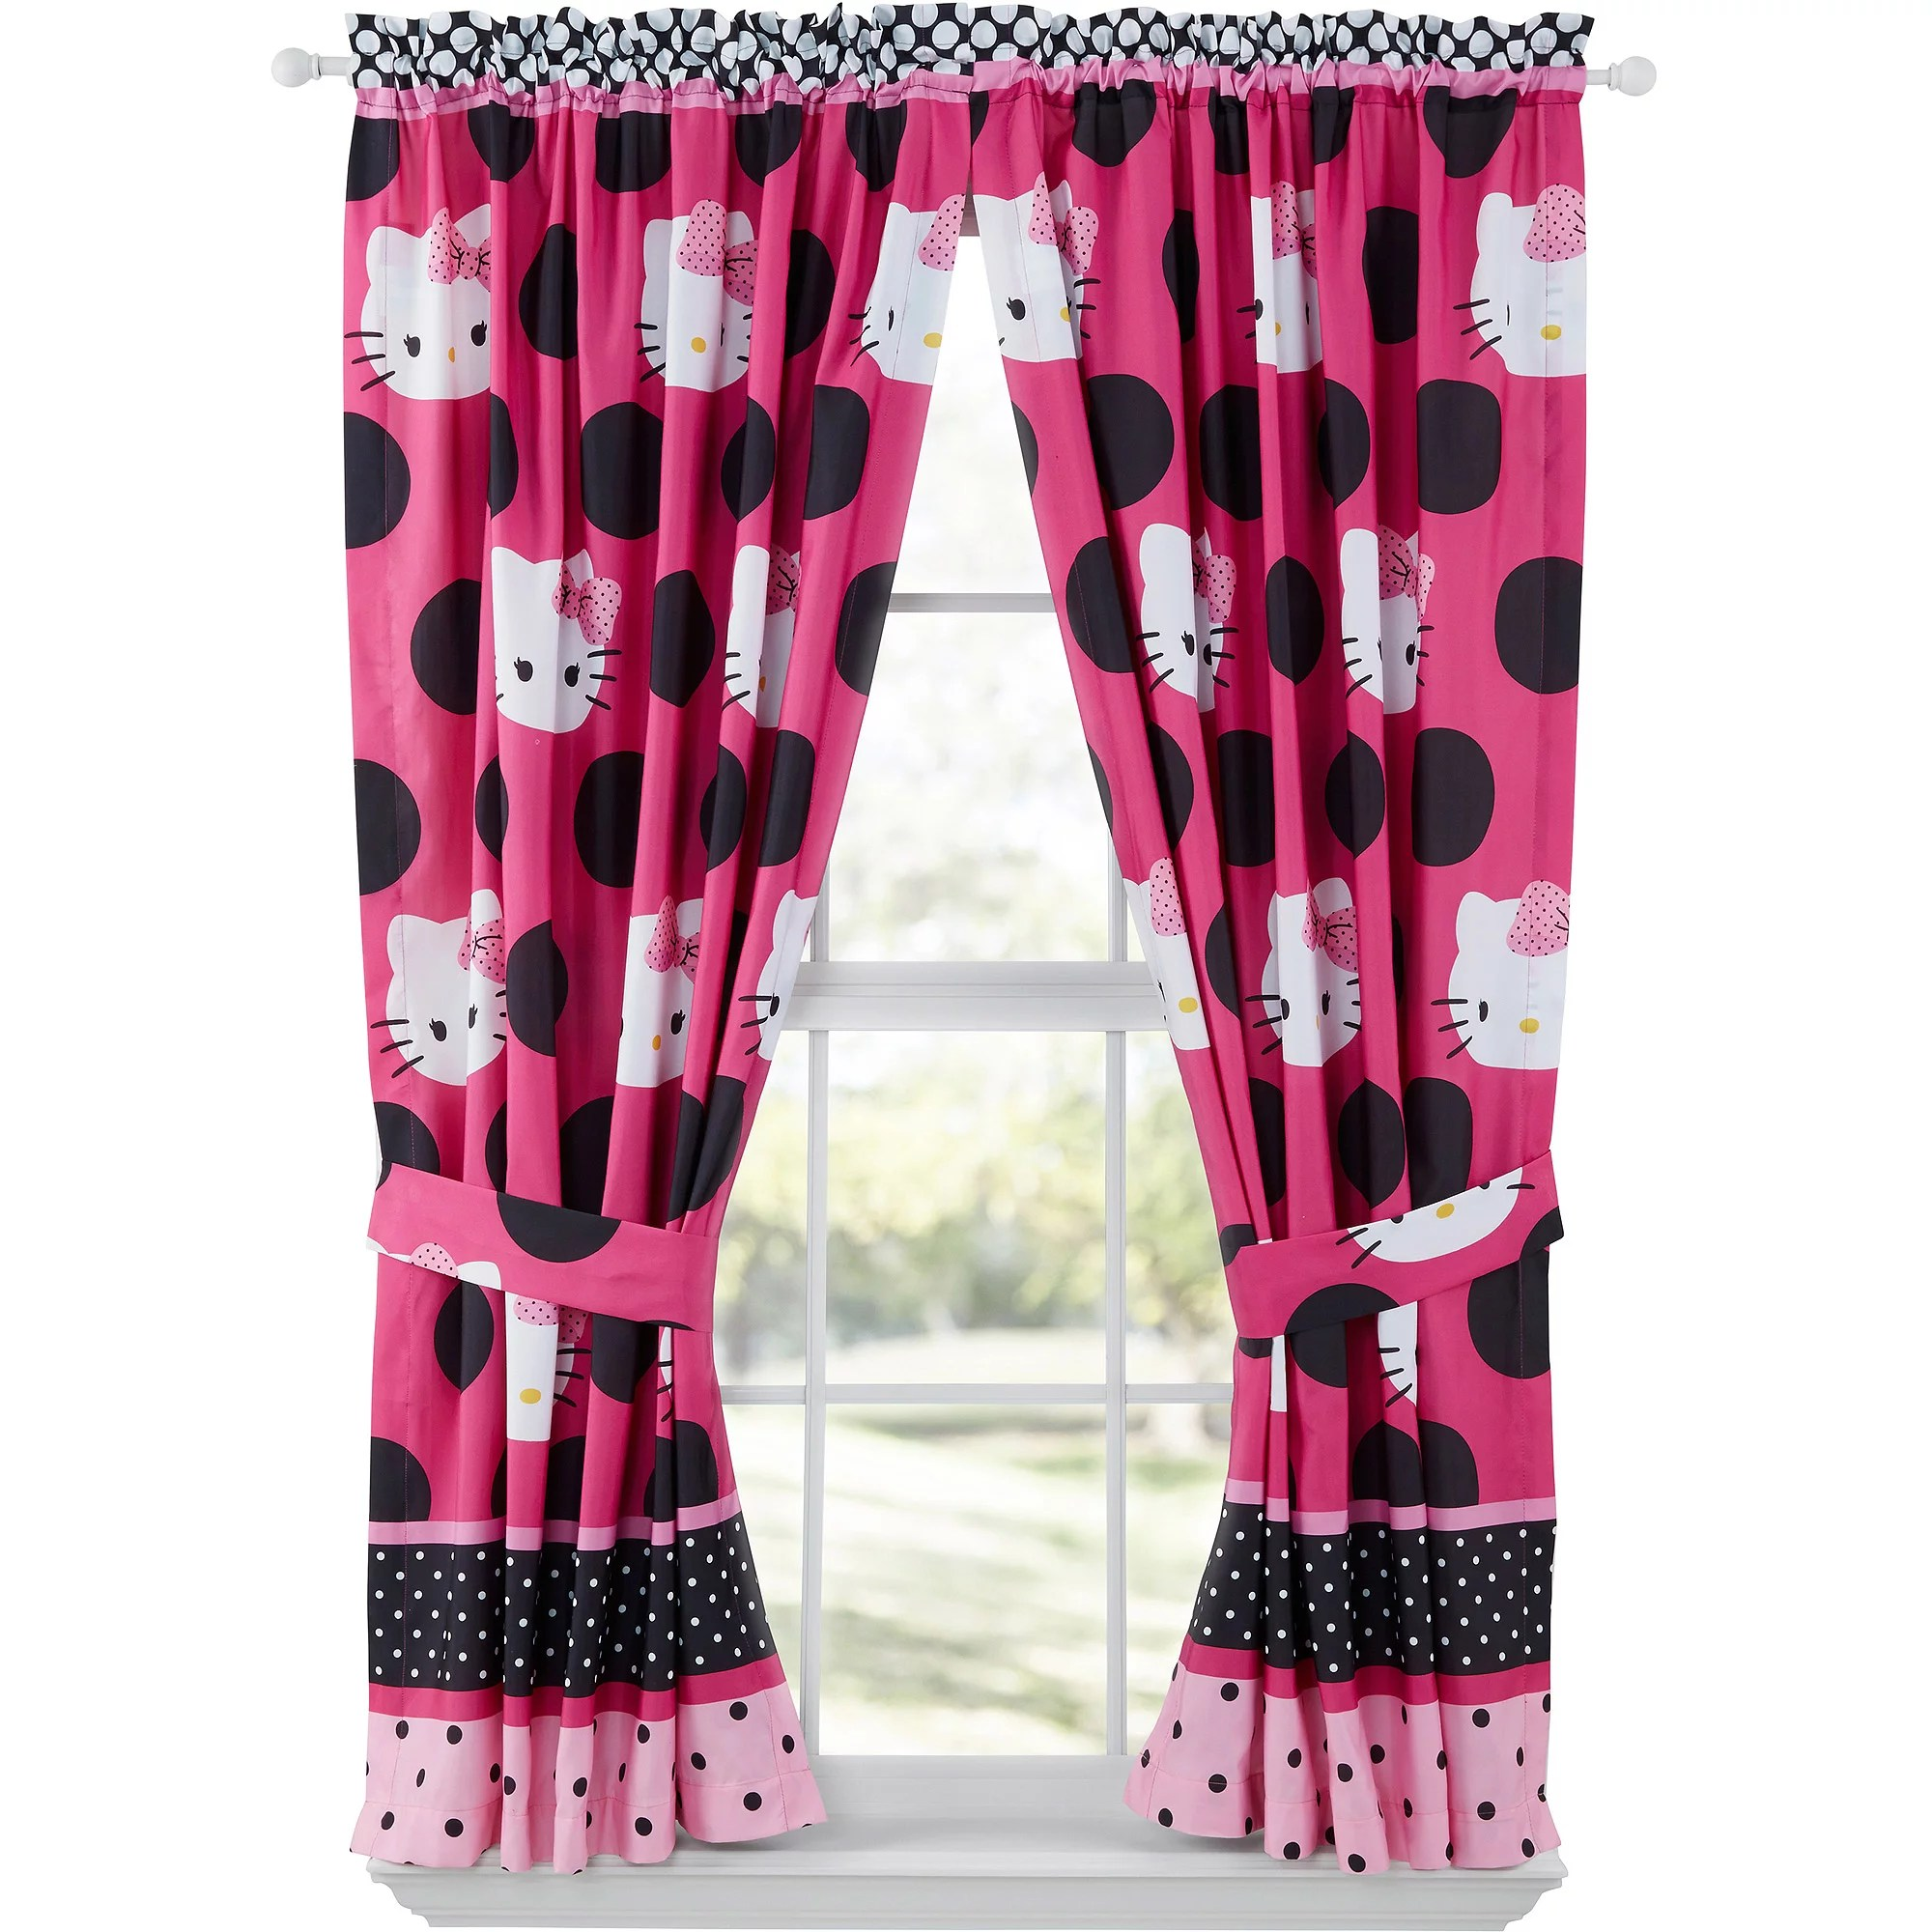 Hello Kitty Dotted in Pink Girls Bedroom Curtain Panels